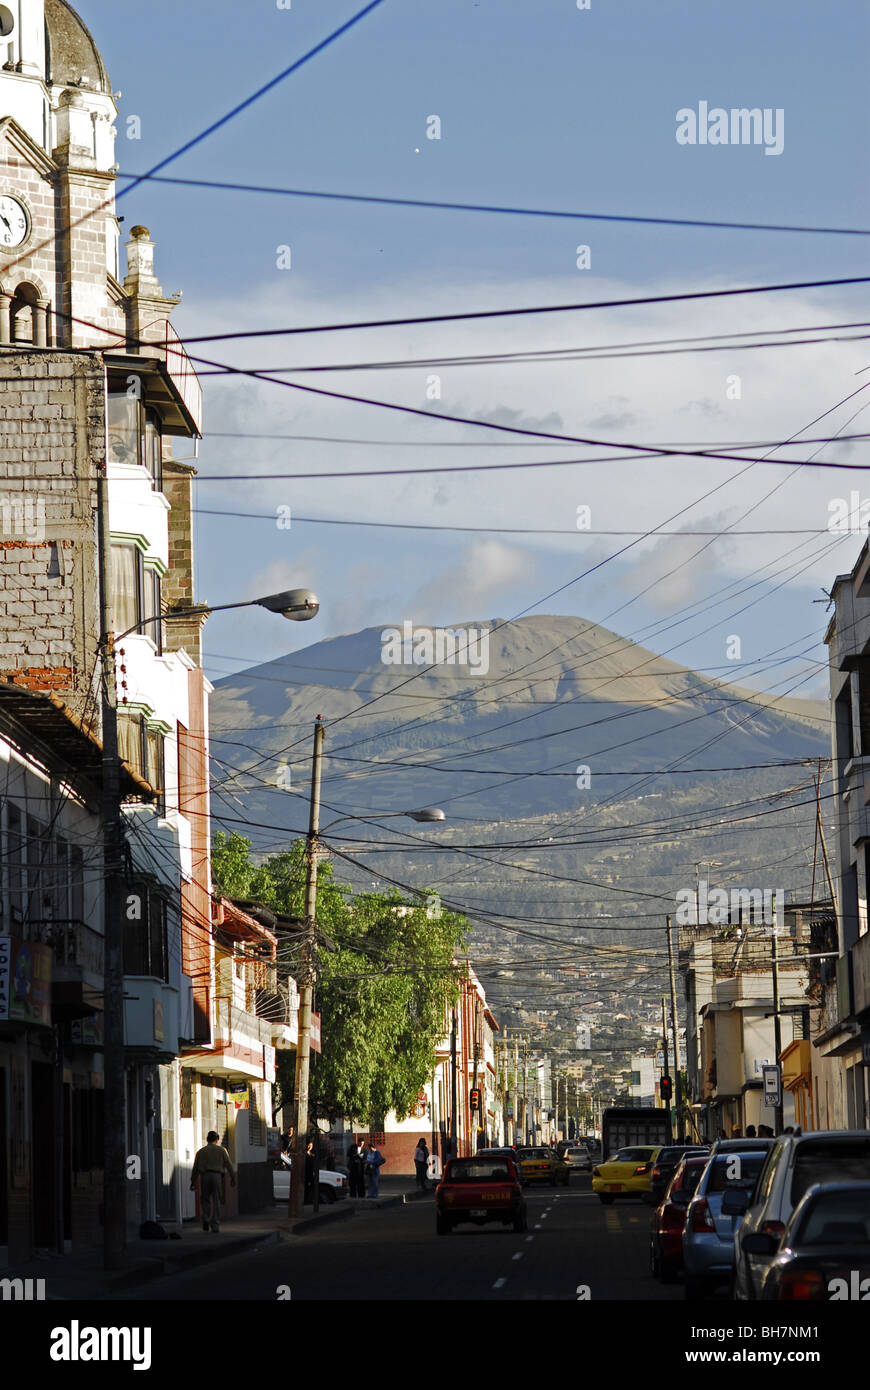 Ecuador, Ibarra, view of crowded urban scene in front of a volcano against cloudy sky - Stock Image